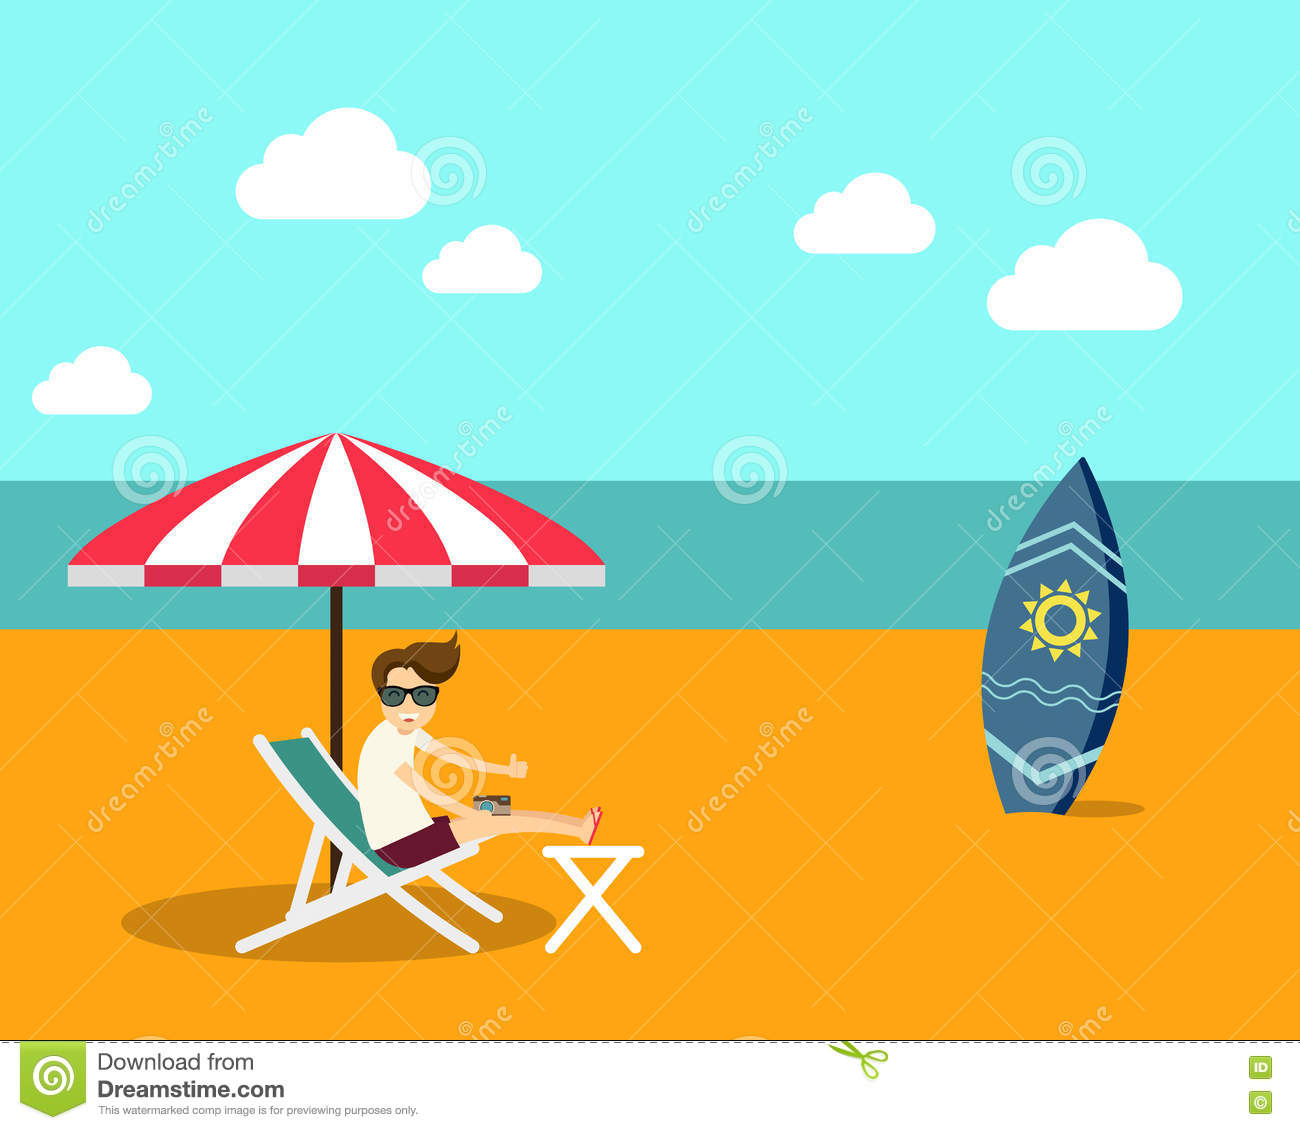 summer vector illustraitons - photo #47